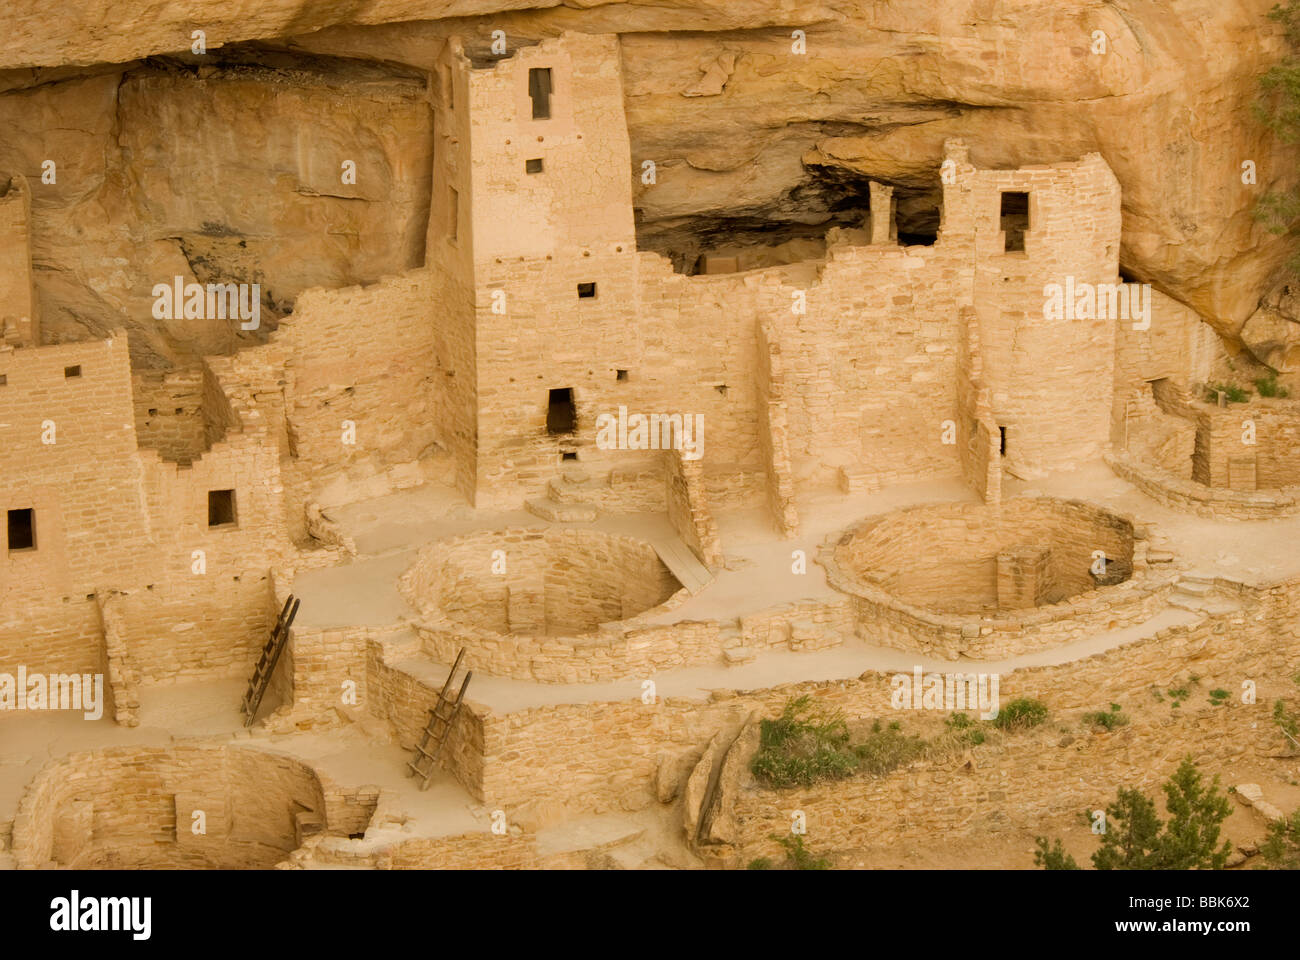 USA Colorado Cortez Mesa Verde National Park Cliff Palace 12 century ancestral puebloan cliff dwellings ruins - Stock Image